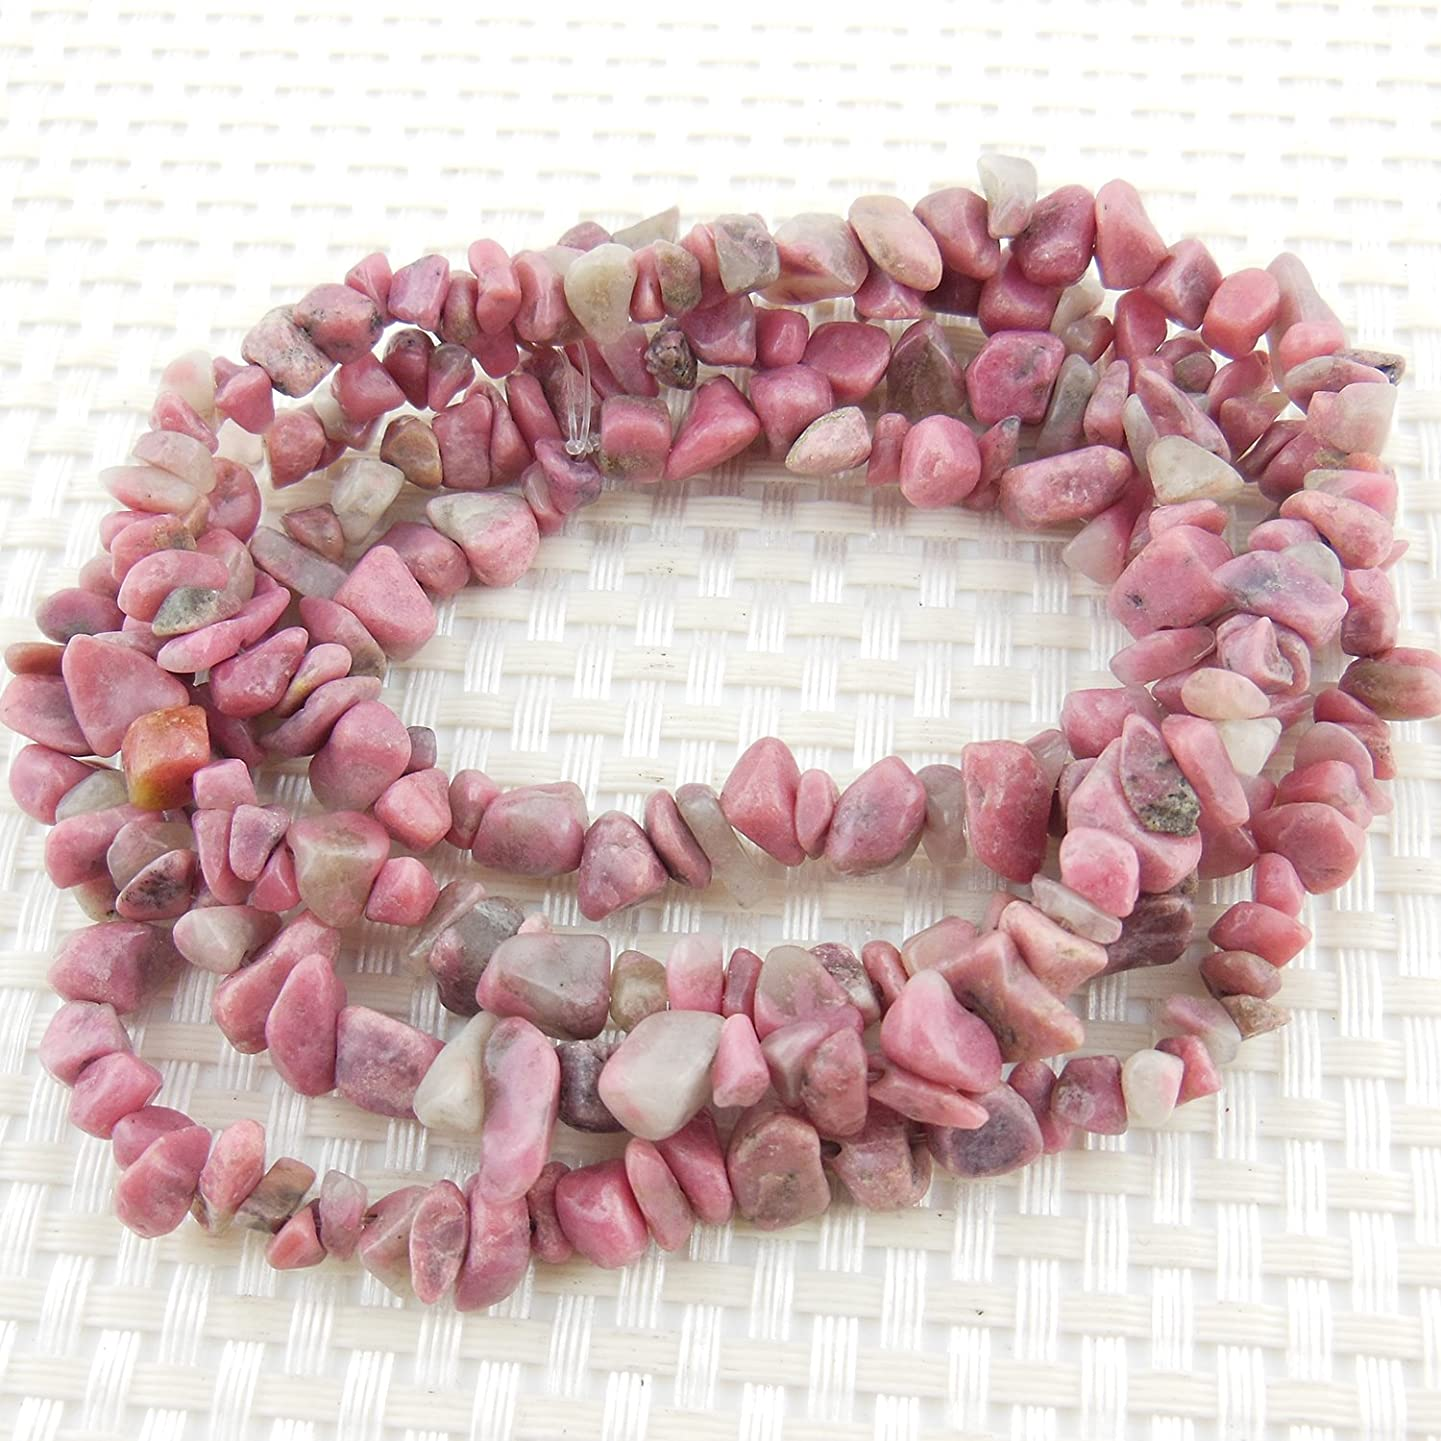 COIRIS 33'' Strand 5-8MM Natural Chips Stone Loose Gemstone Beads for Jewelry DIY or Making & Design (St-1062)